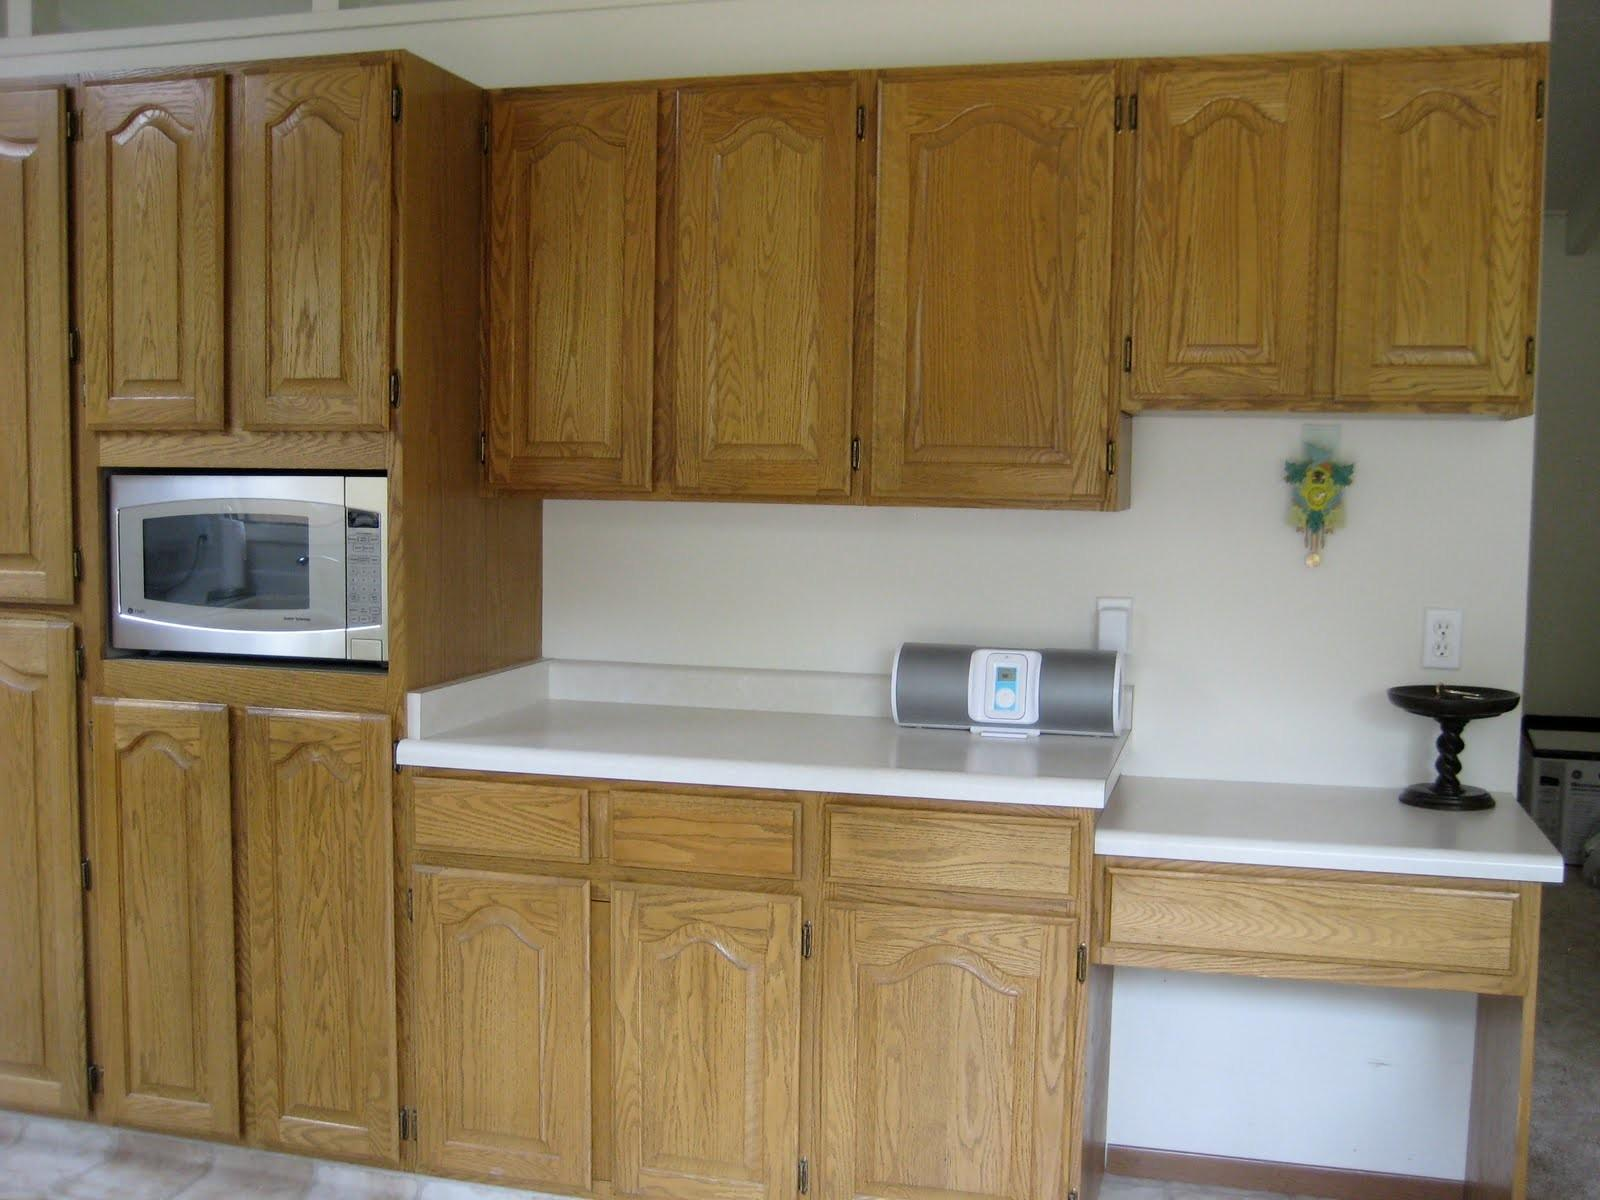 Diy Painted Kitchen Cabinets Before After Home